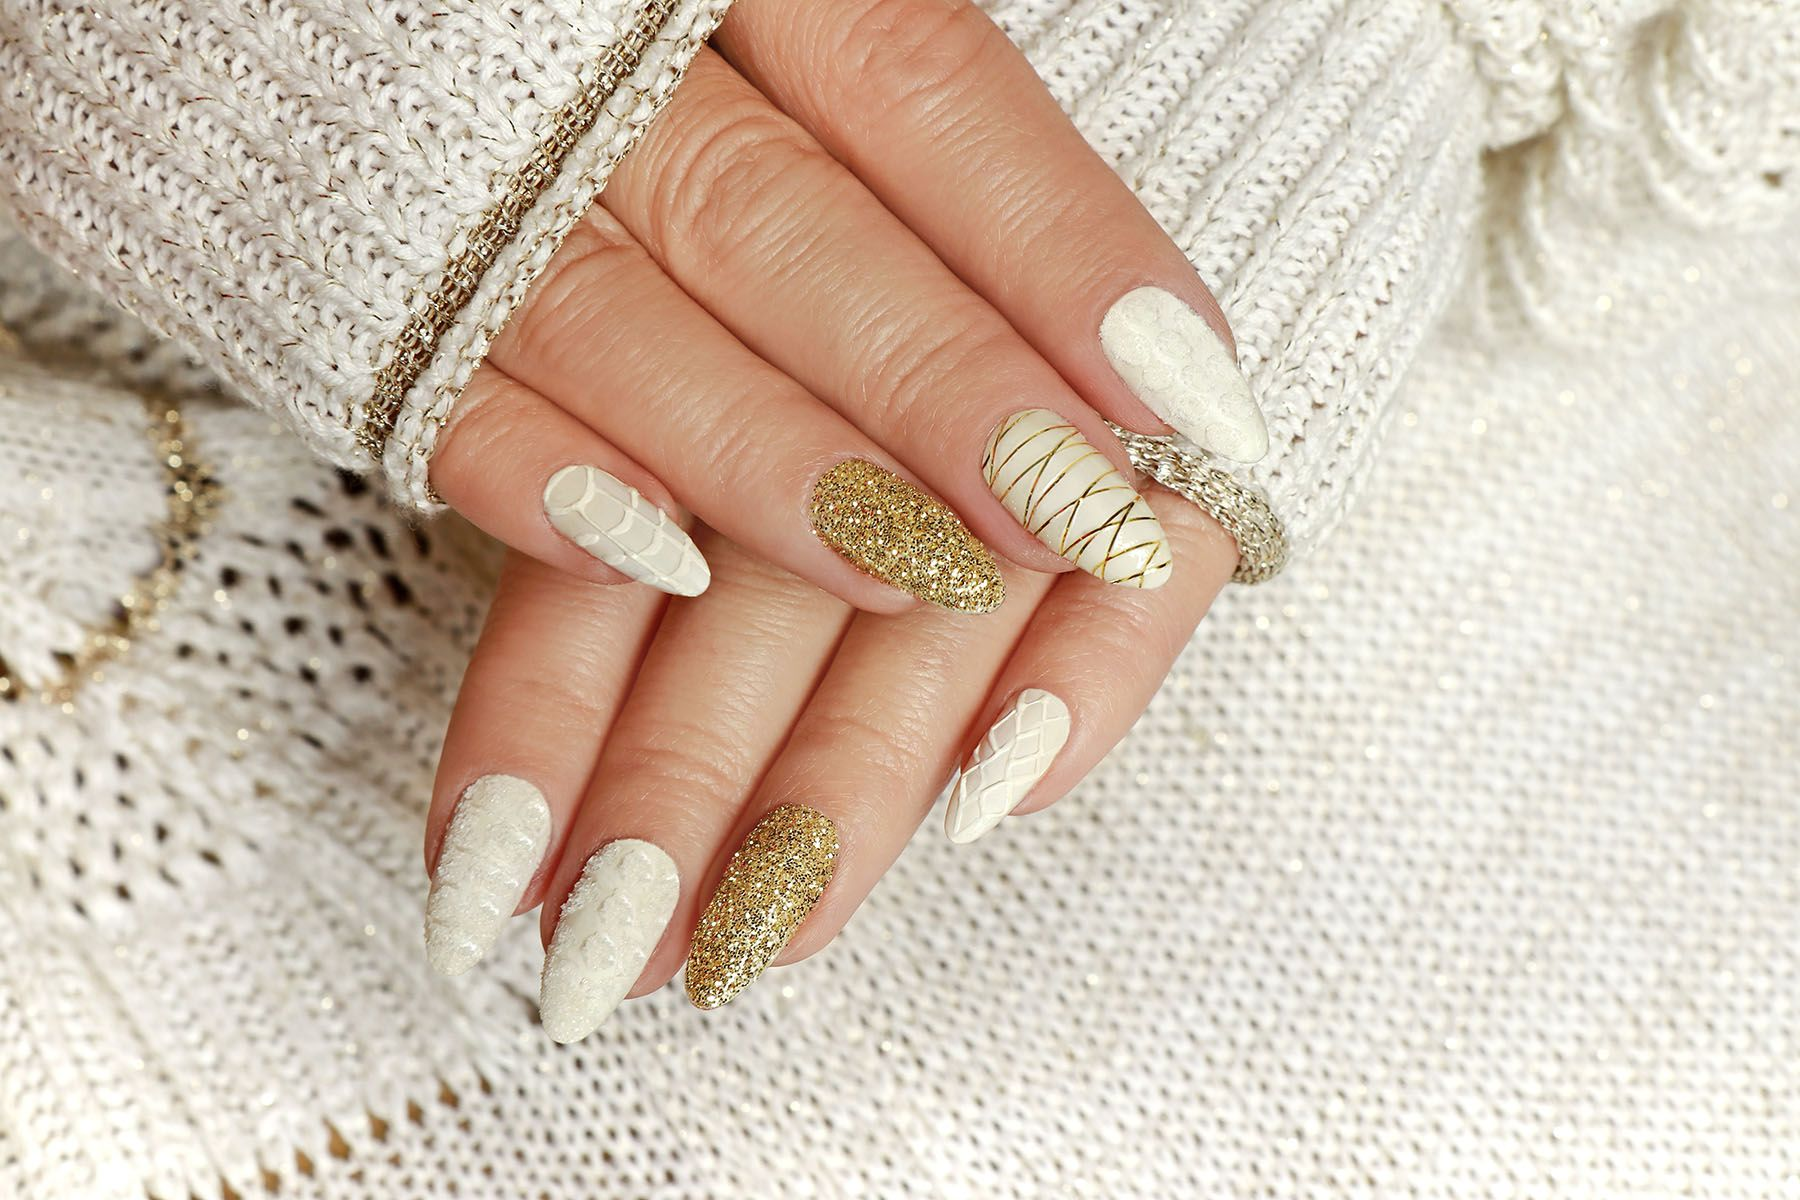 20 Best Winter Nail Designs - Best Winter Nail Ideas 2021